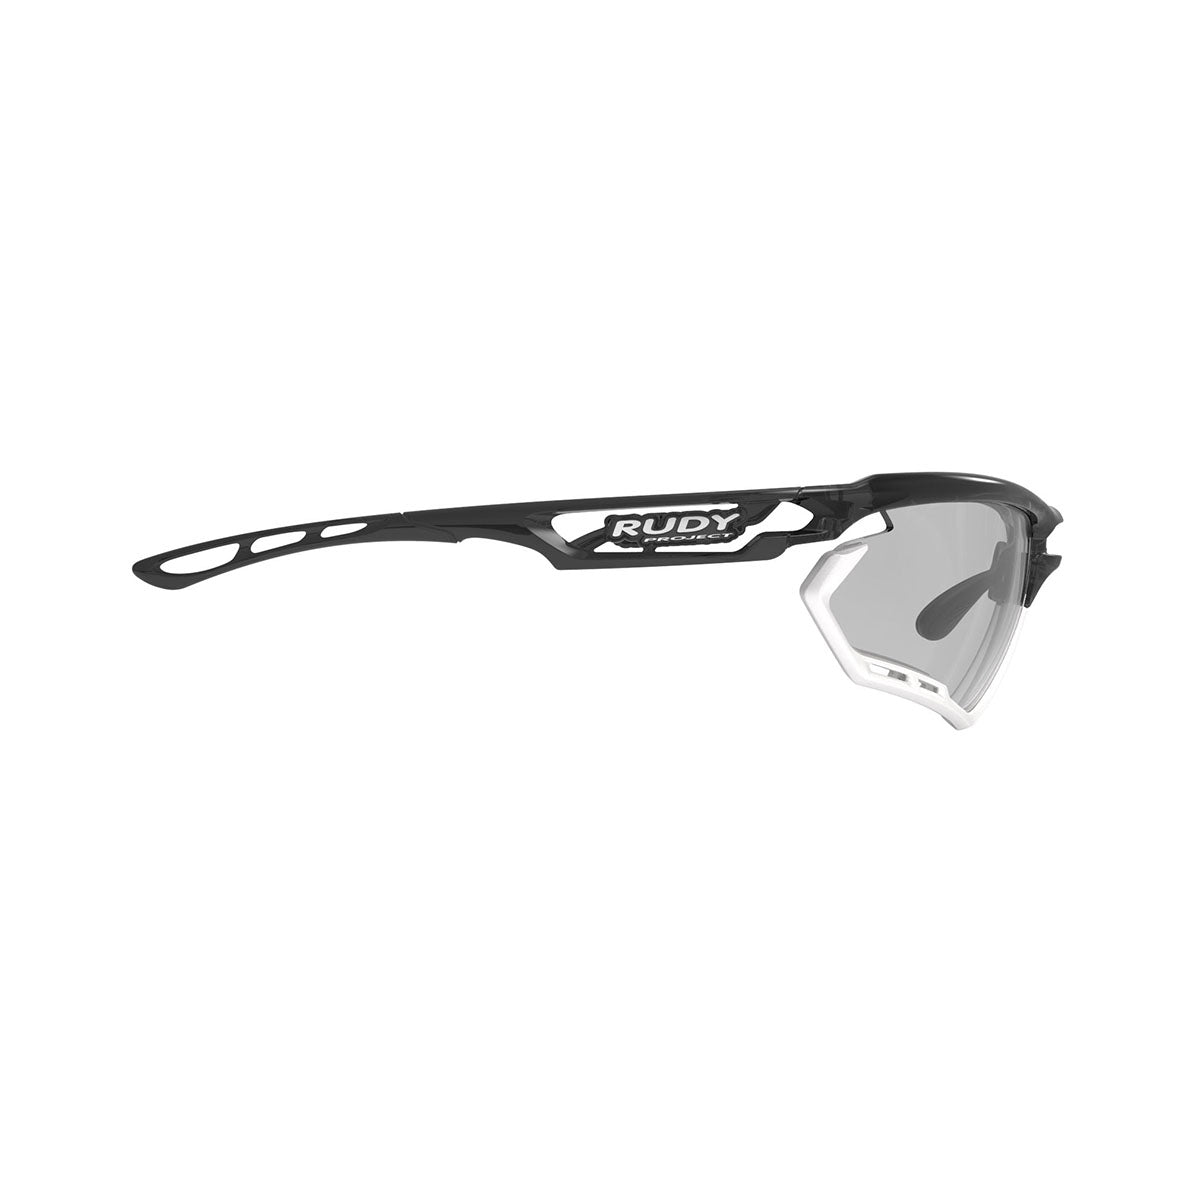 Rudy Project - Fotonyk - frame color: Crystal Graphite - lens color: ImpactX-2 Photochromic Clear to Black - Bumper Color: White - photo angle: Side Variant Hover Image